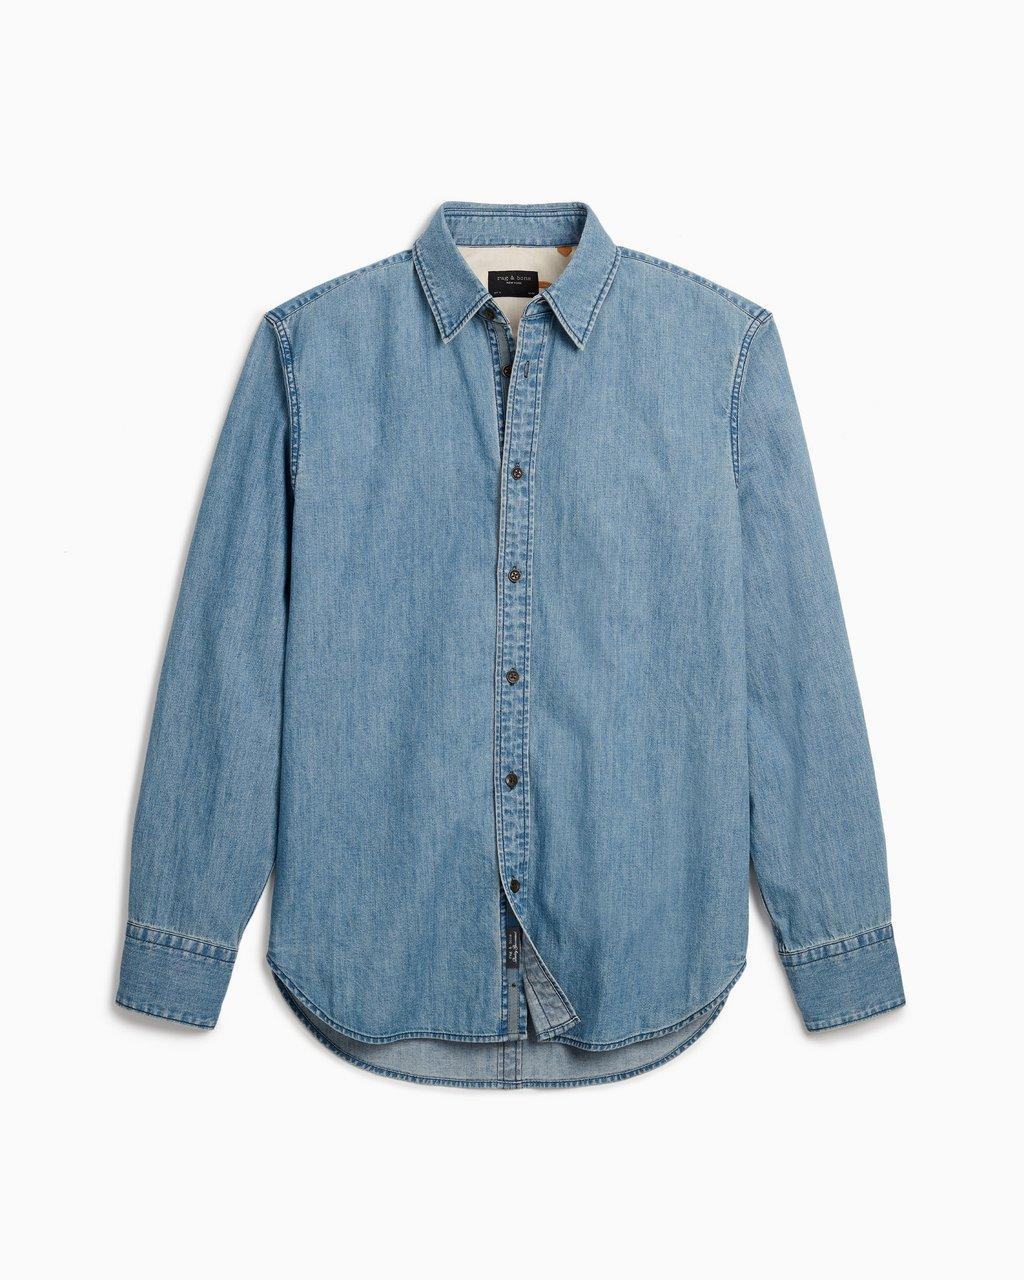 Fit 3 Denim Shirt - Chambray